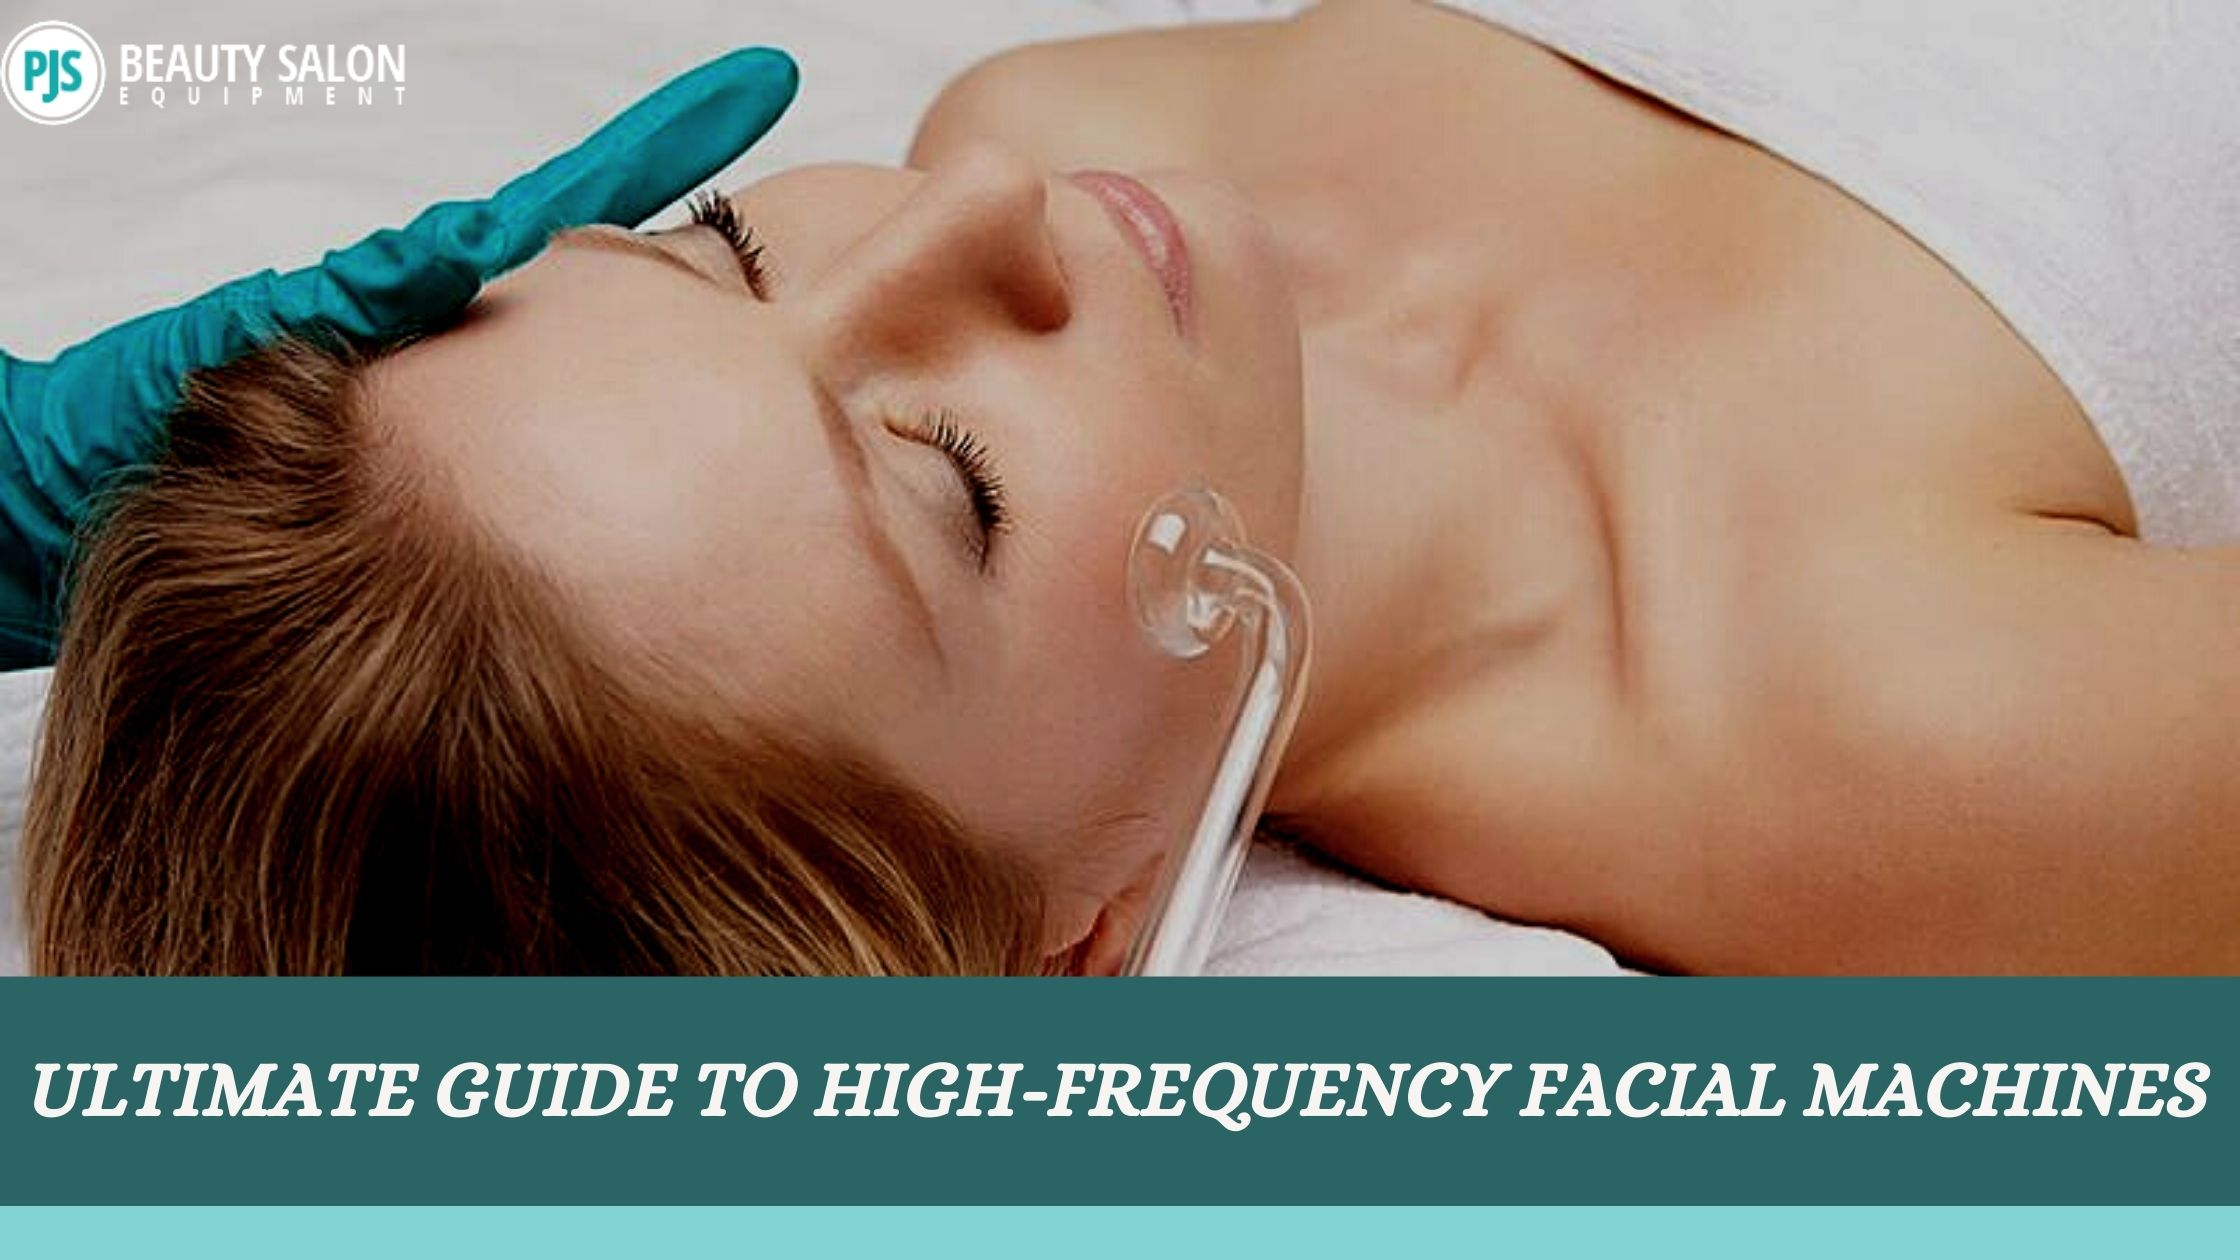 Ultimate Guide To High-Frequency Facial Machines